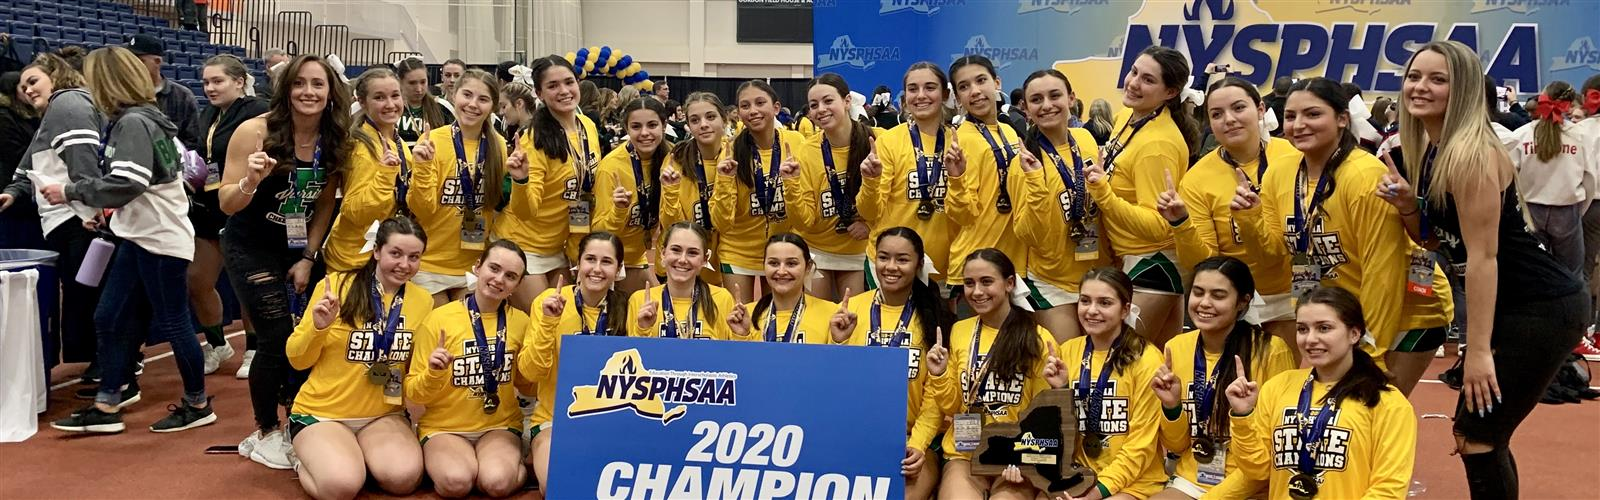 FHS Competition Cheer Team Wins State...